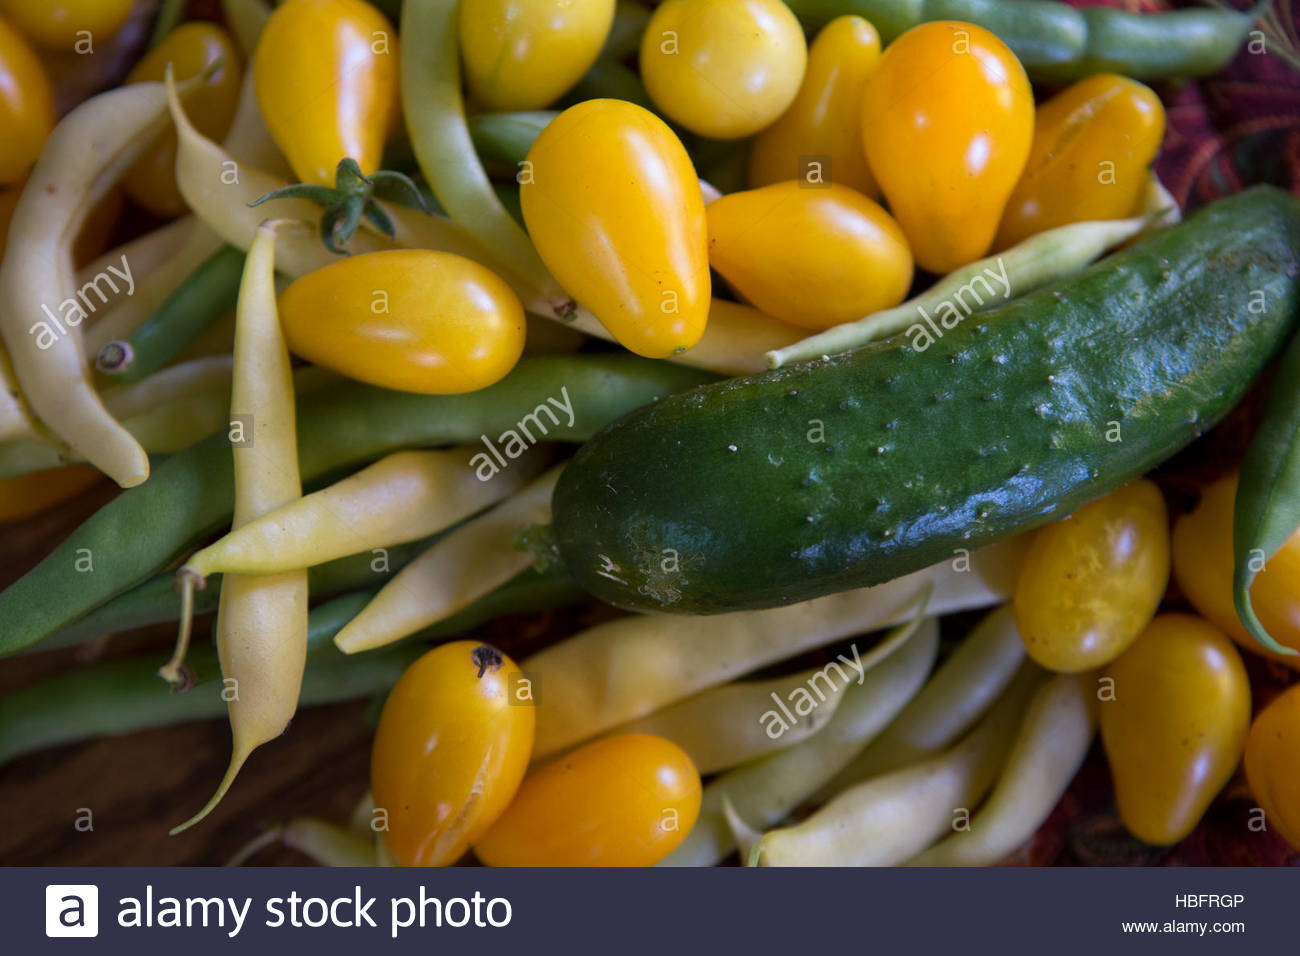 Homegrown vegetables supplement what a family gets from the food pantry. - Stock Image